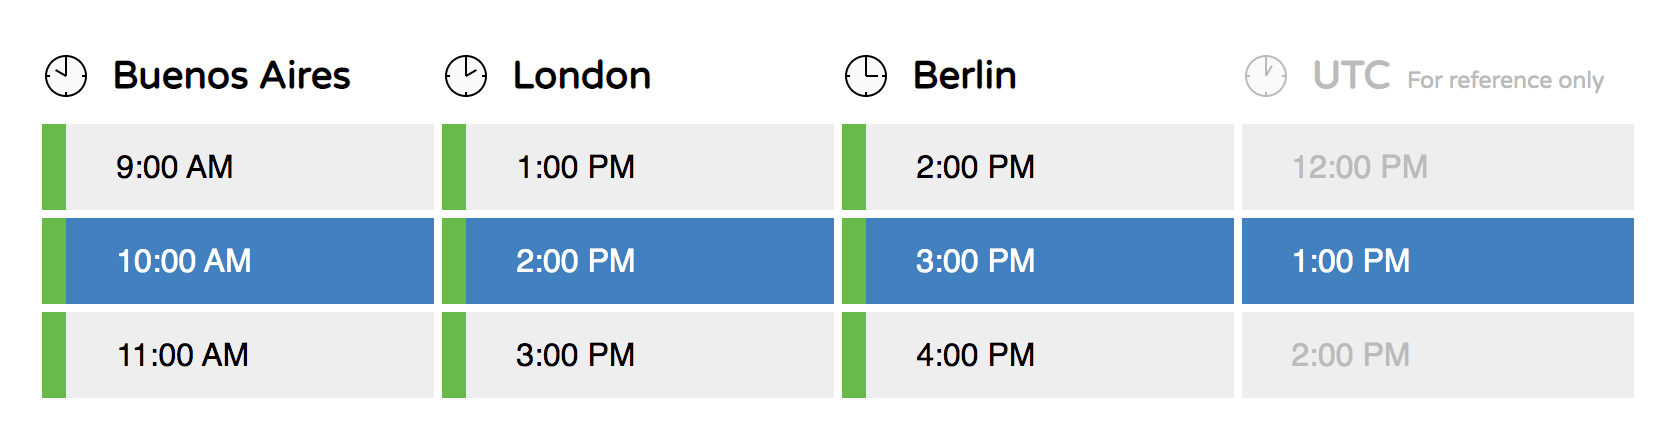 time difference between argentina and western Europe